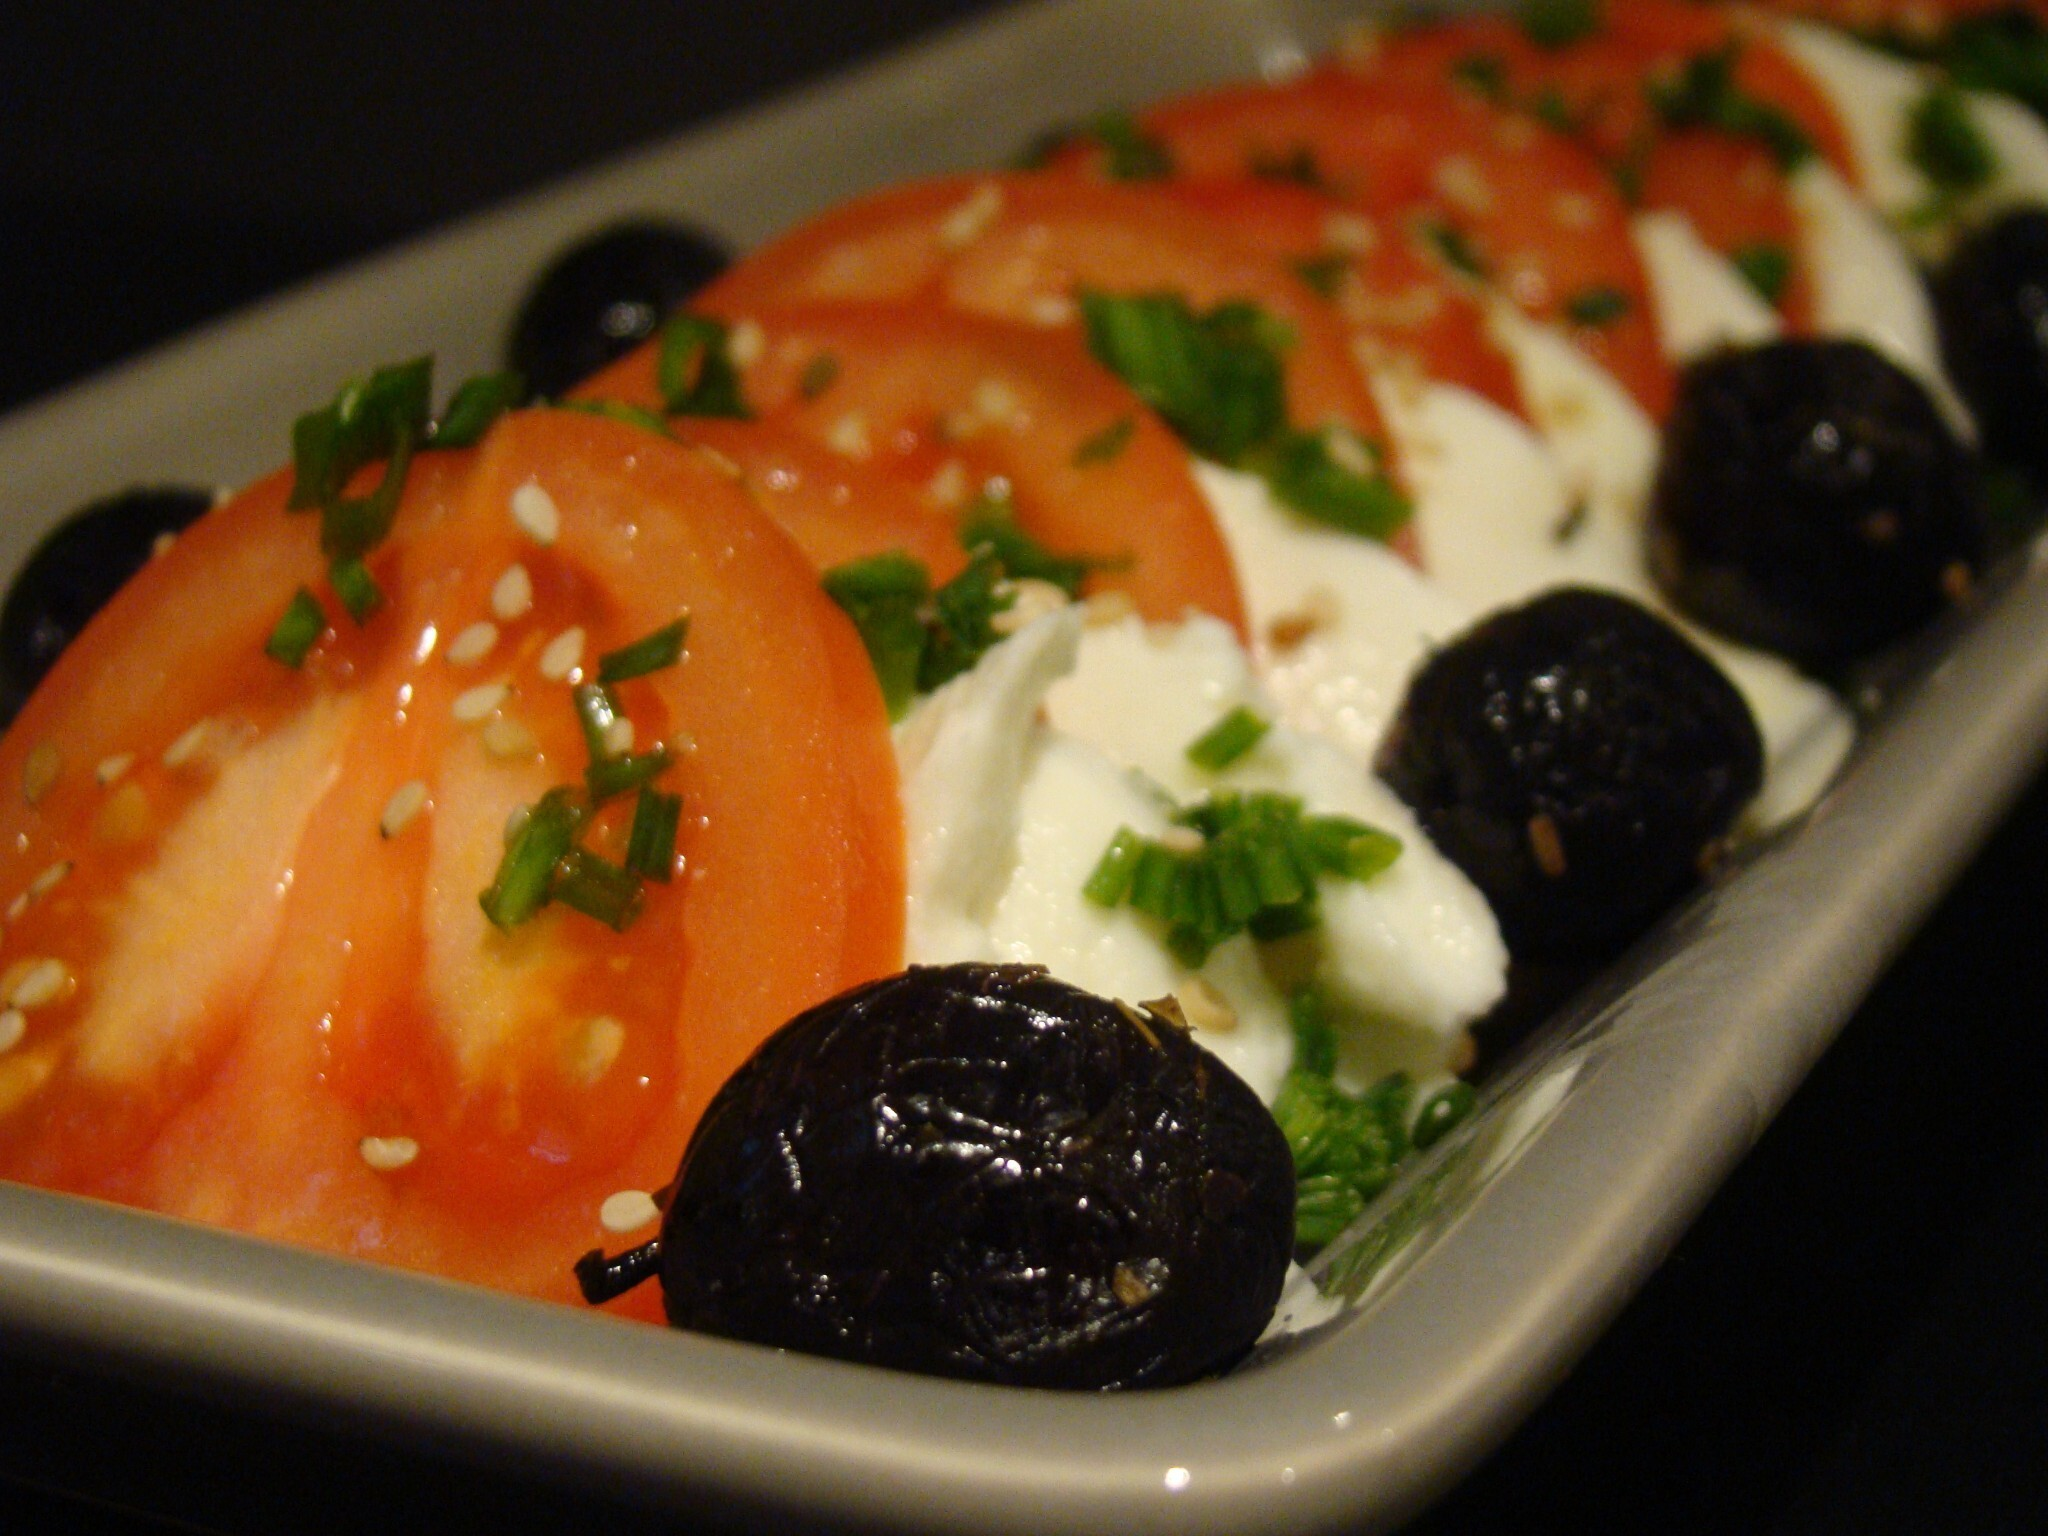 Salada de Tomate e Mozzarella / Tomato and Mozzarella Salad